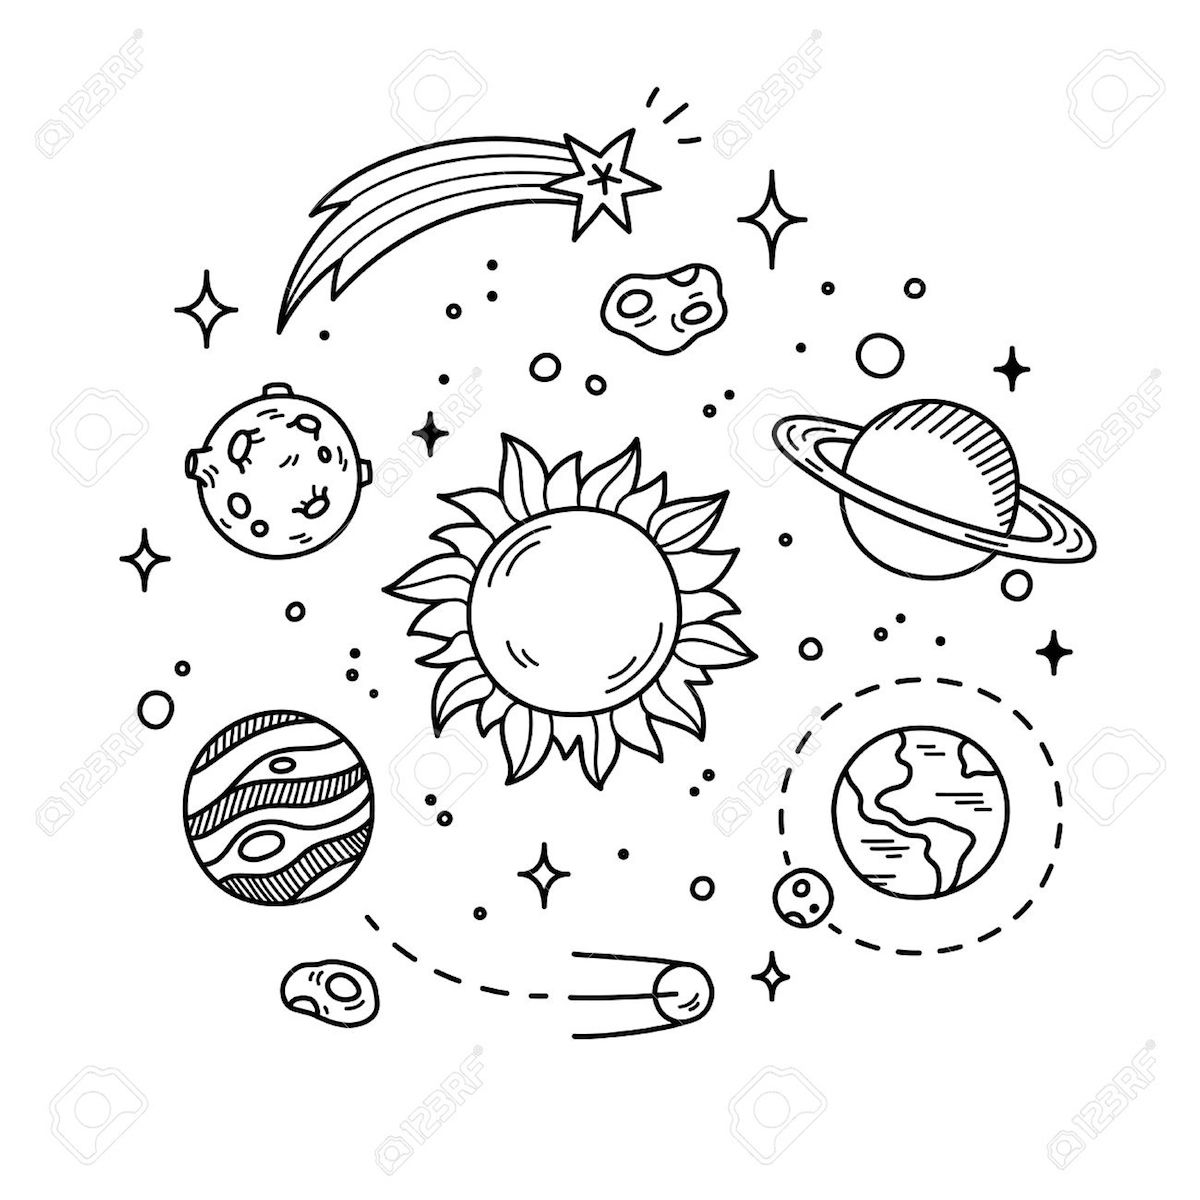 Outer Space Coloring Pages And